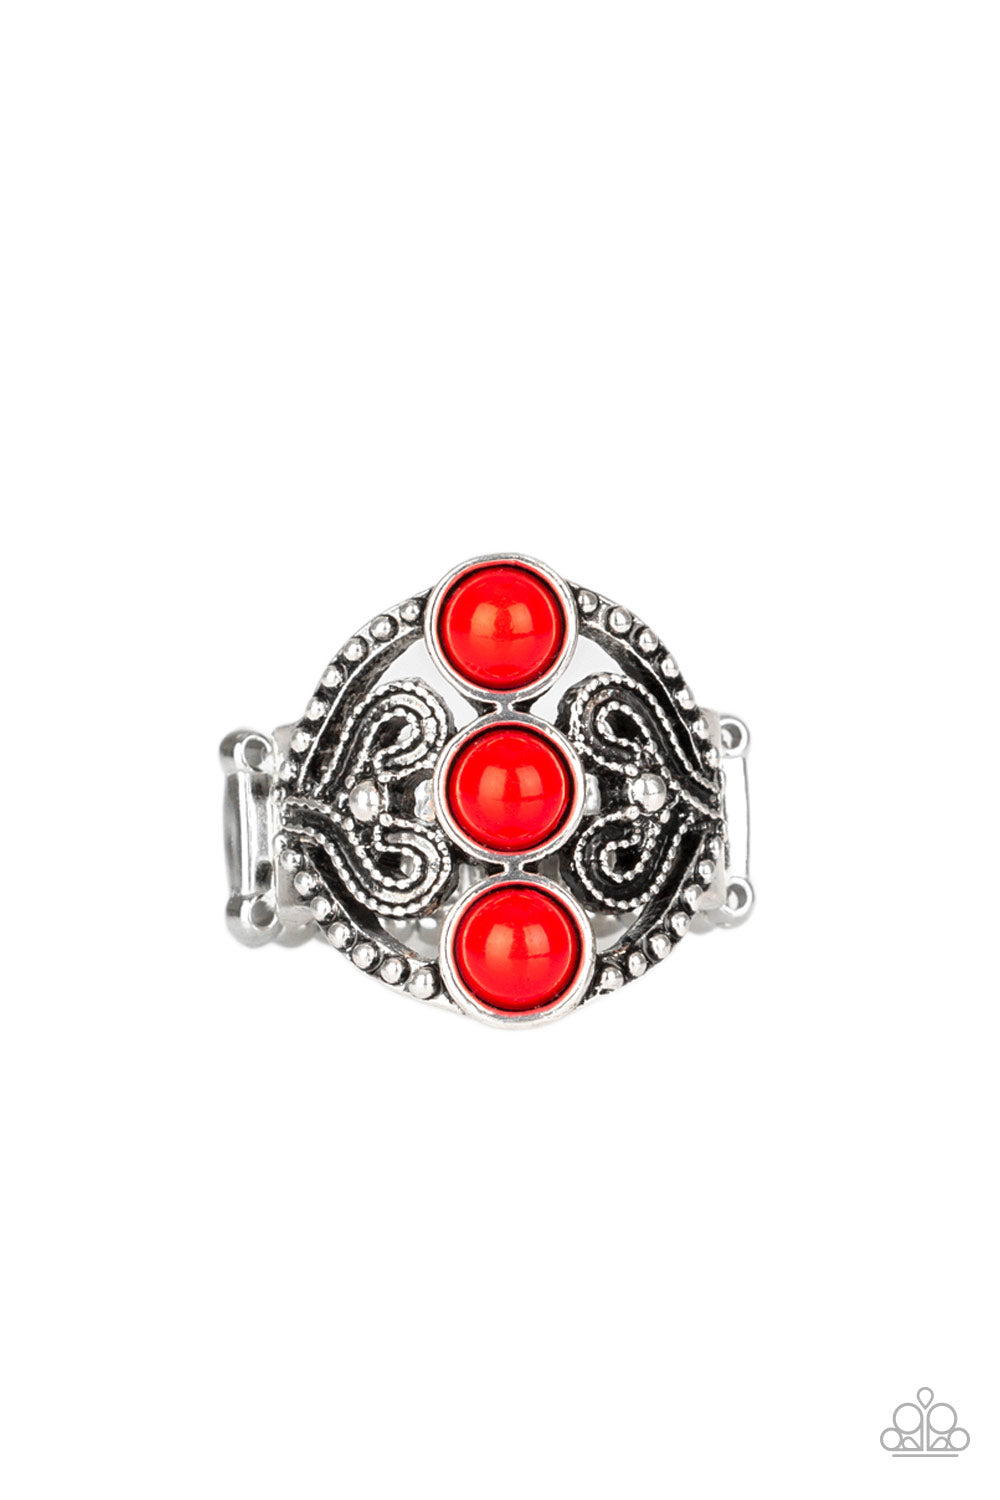 five-dollar-jewelry-triple-whammy-red-paparazzi-accessories